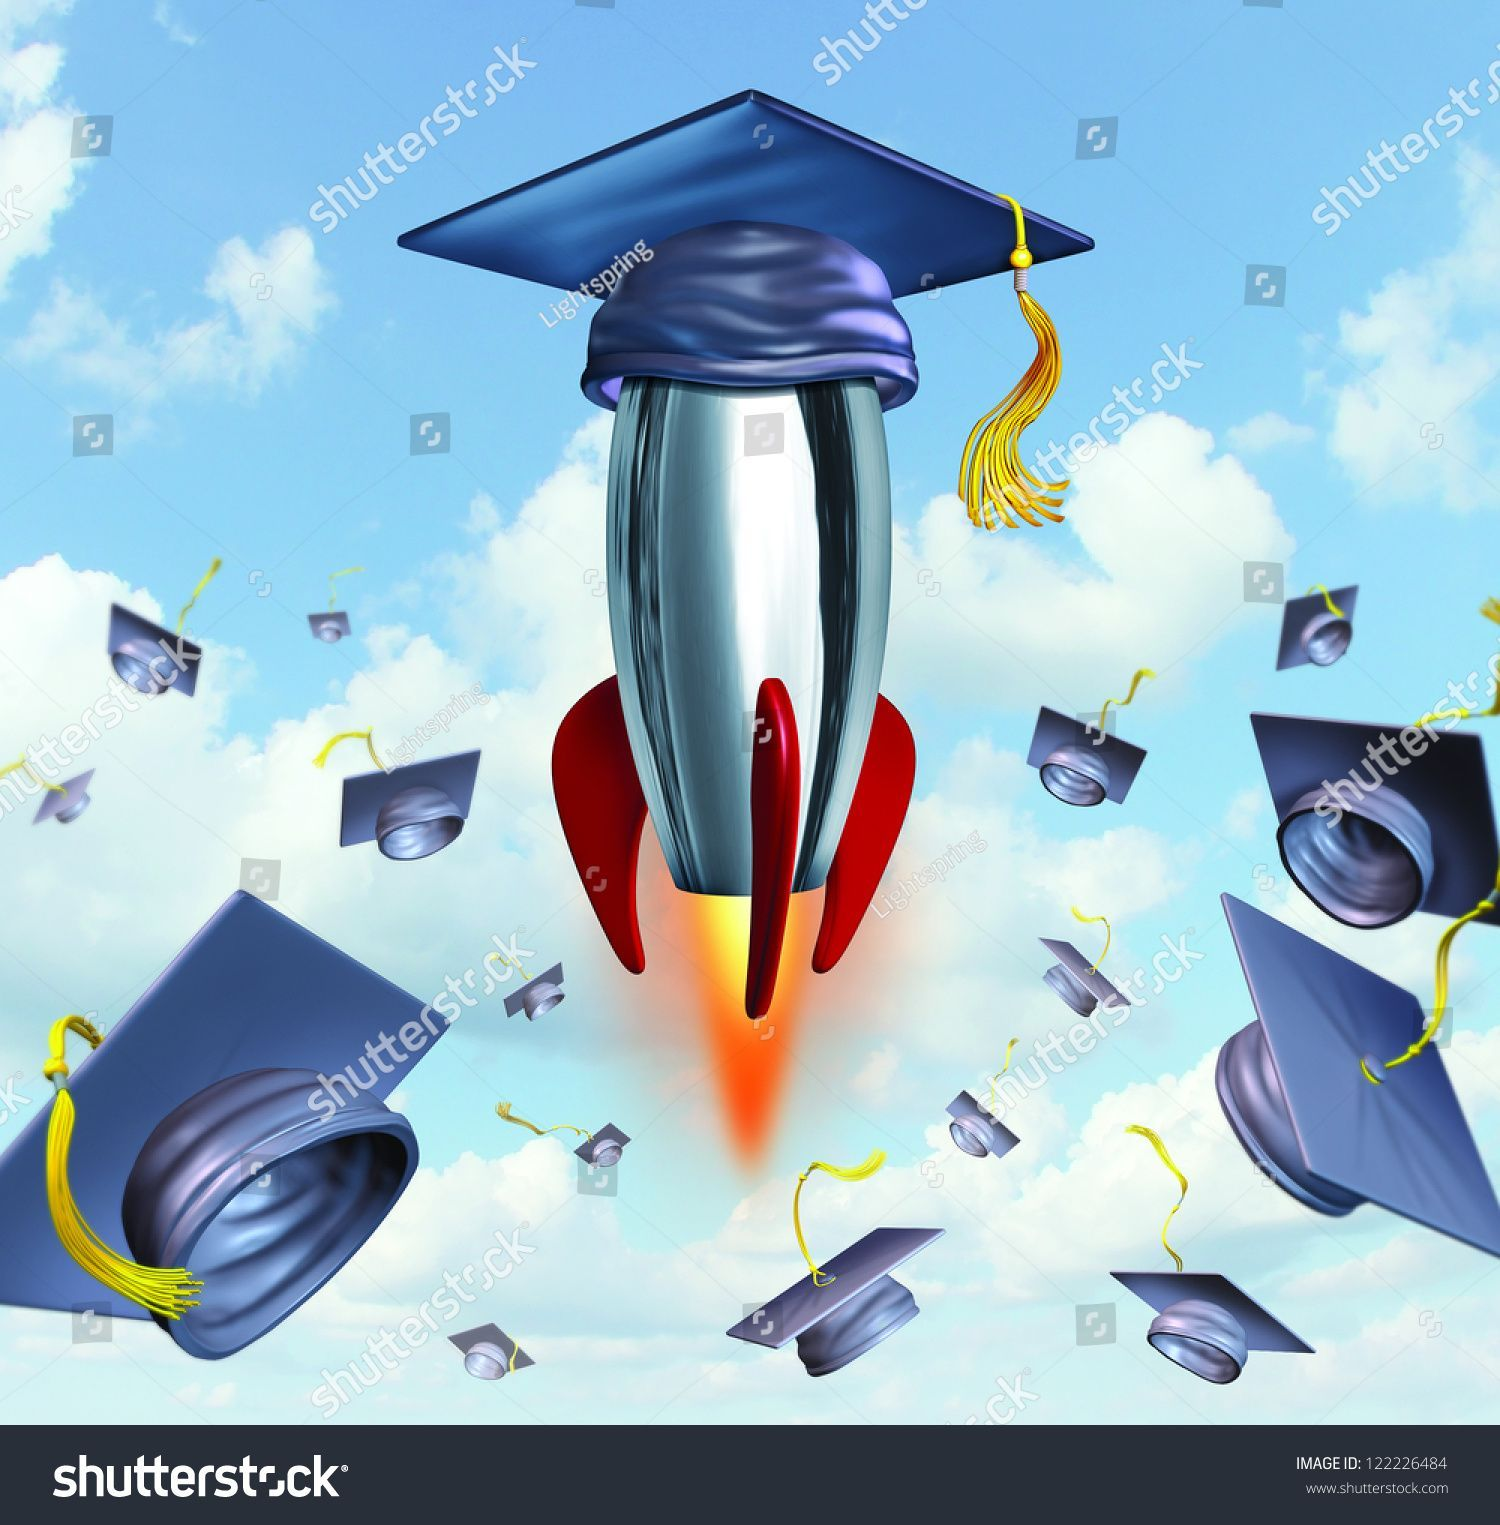 Education Success With Graduation Hats Thrown In The Air As A Celebration With A In 2020 Education Success Graduation Hat Graduation